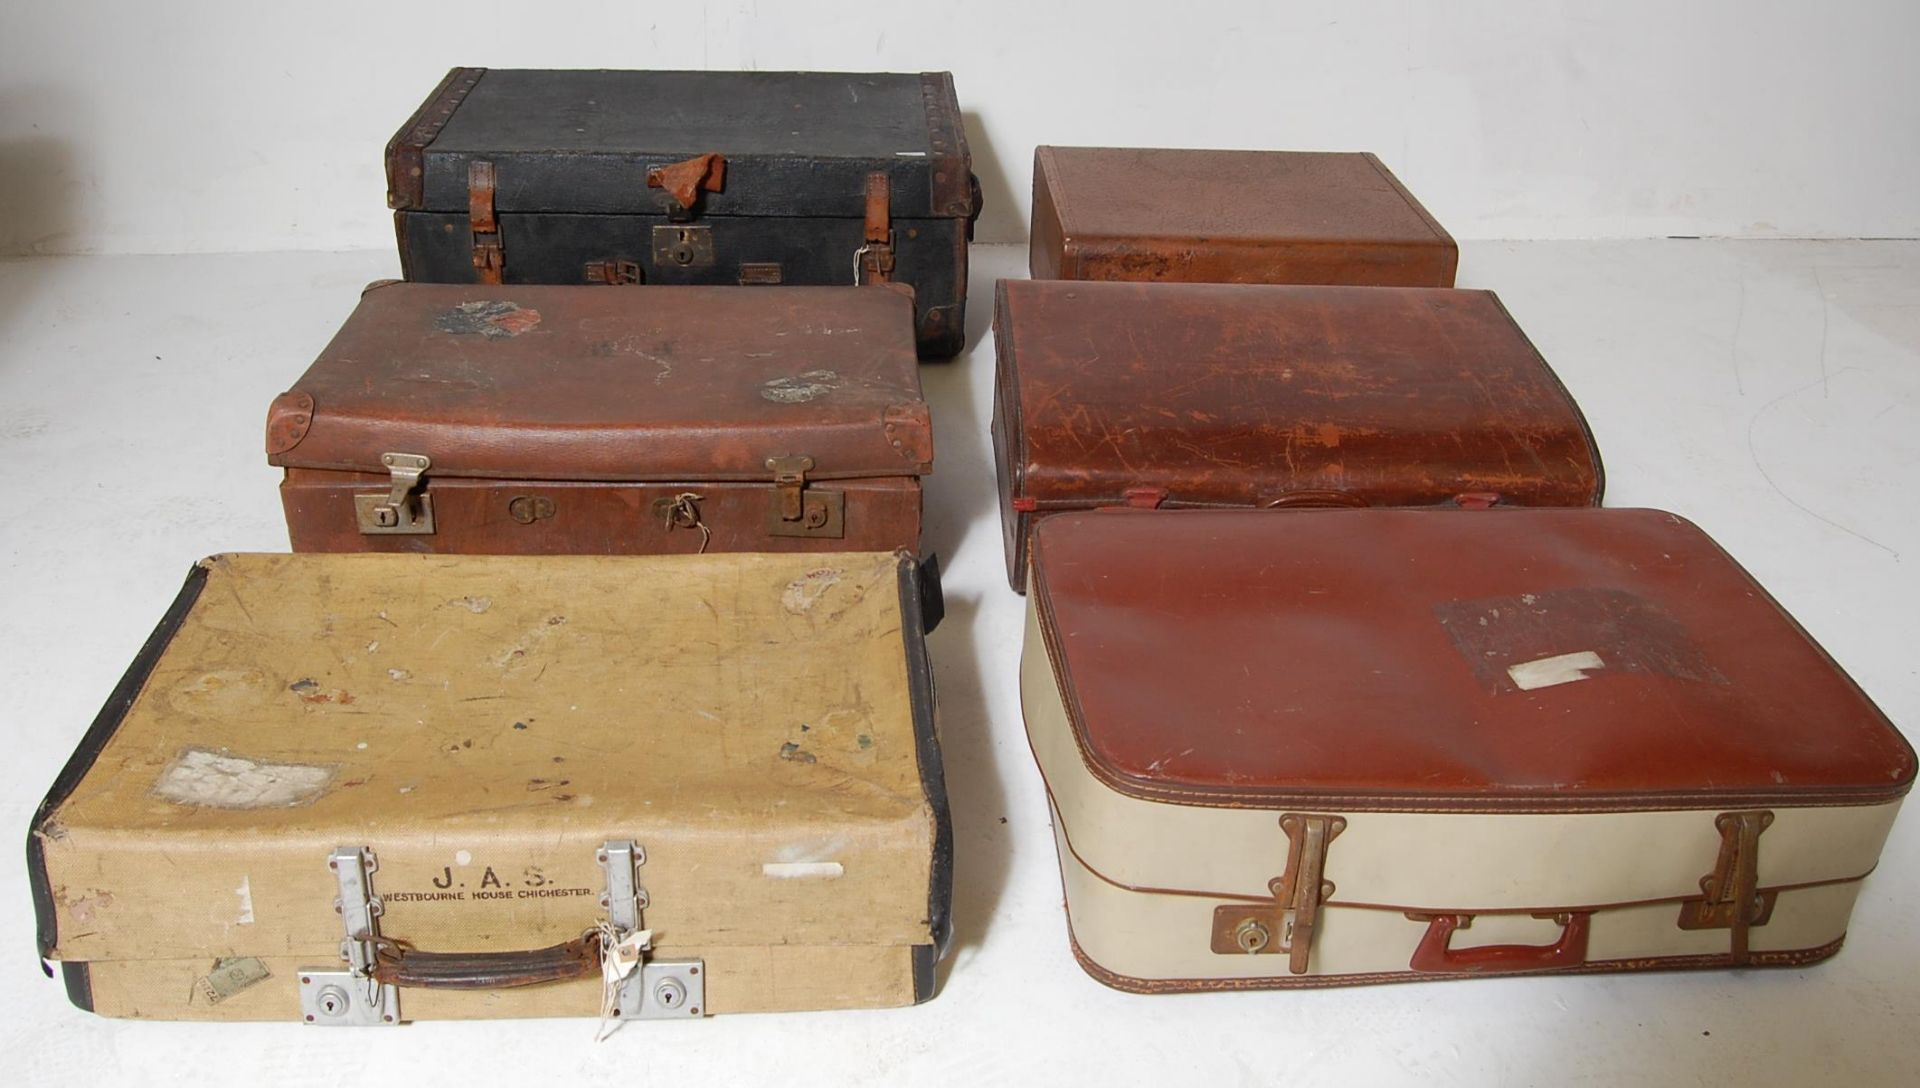 SIX VINTAGE RETRO 20TH CENTURY SUITCASES / TRAVEL TRUNKS